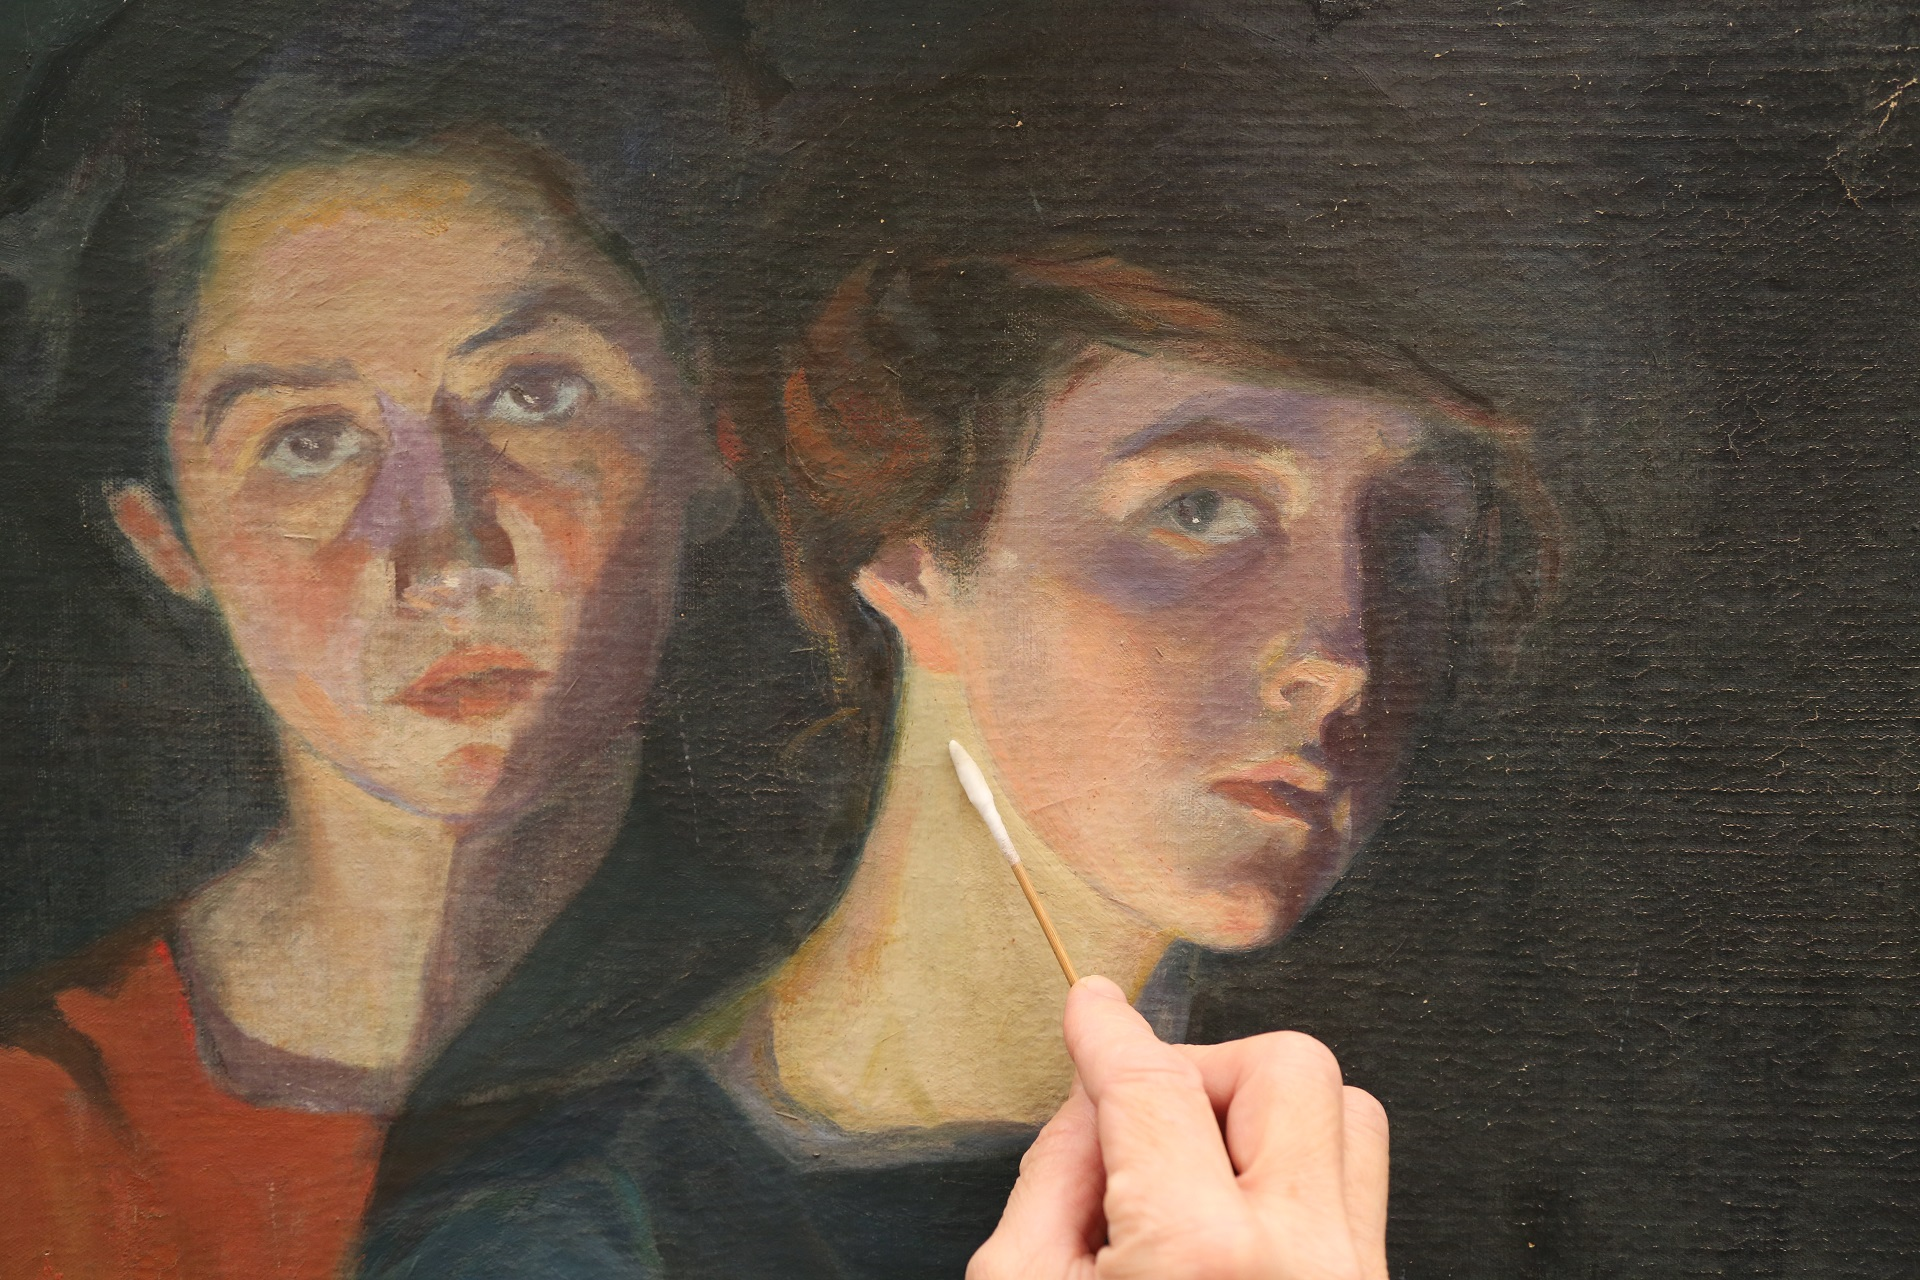 Cleaning The Three Sisters, Elisabeth's face